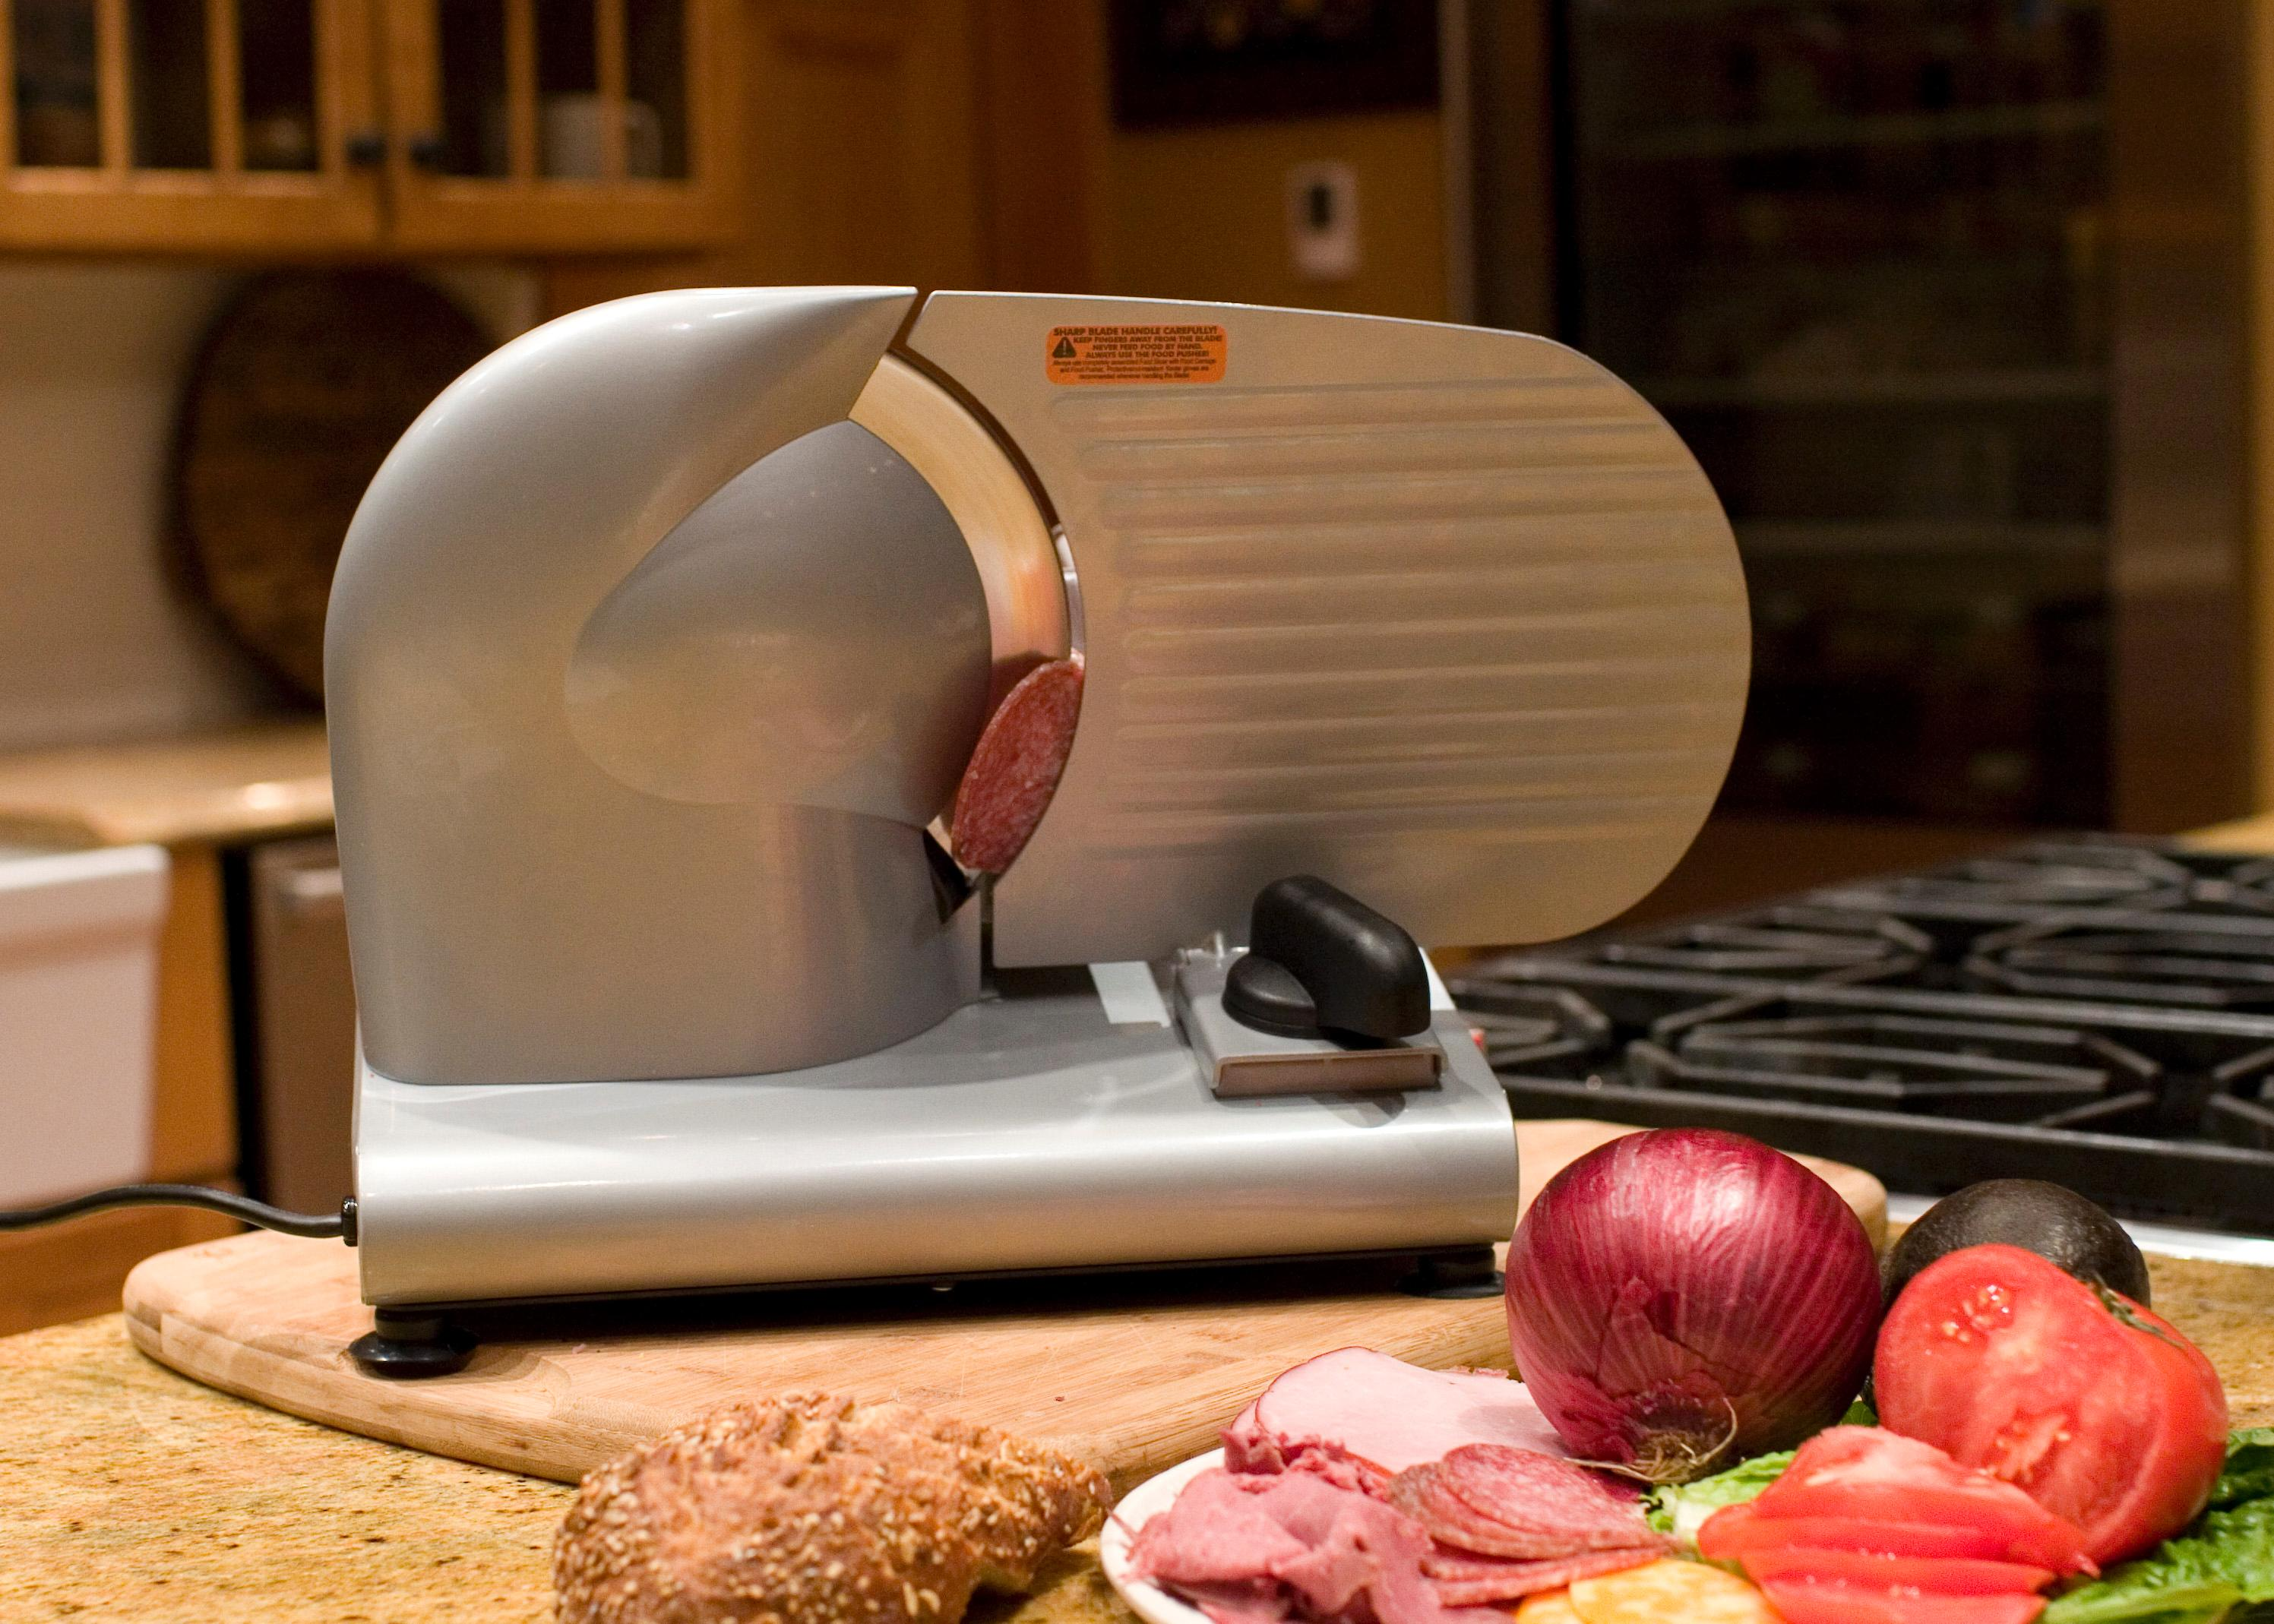 Food Slicers For Home Use ~ Meat slicers for home use commercial food deli